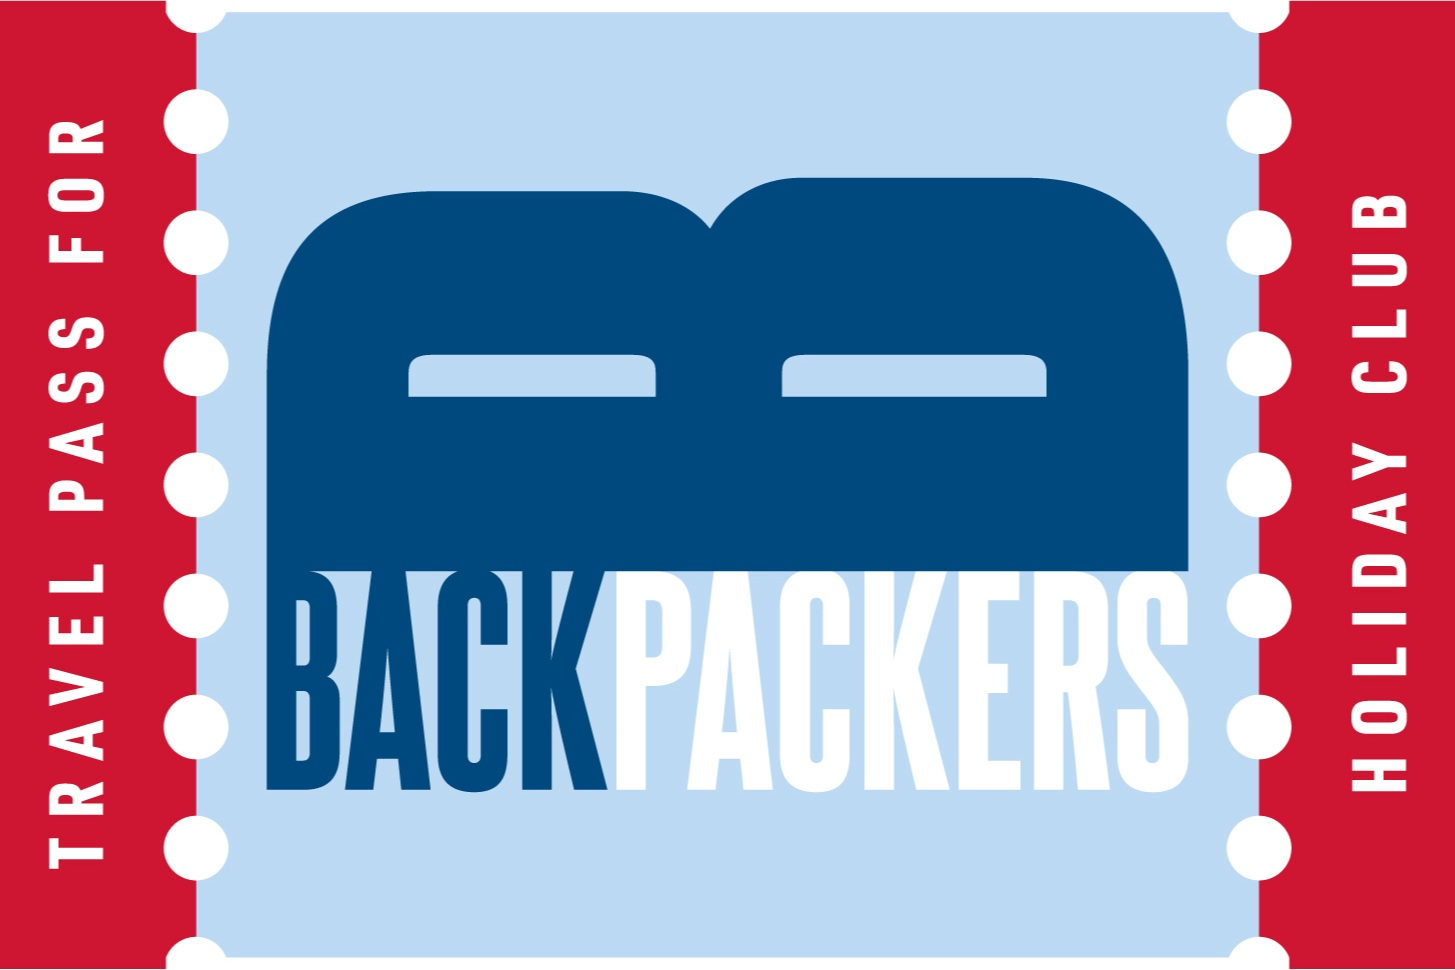 Logo for Backpackers holiday club